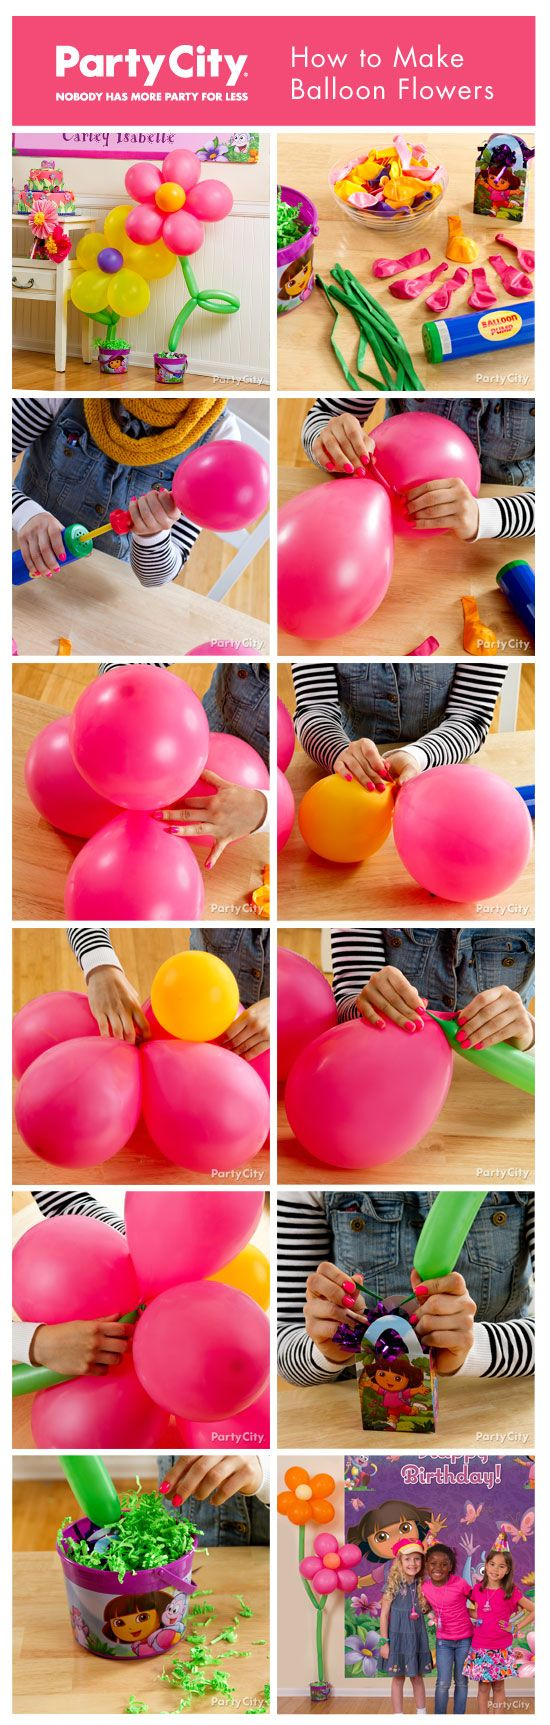 diy balloon decoration ideas for home party12